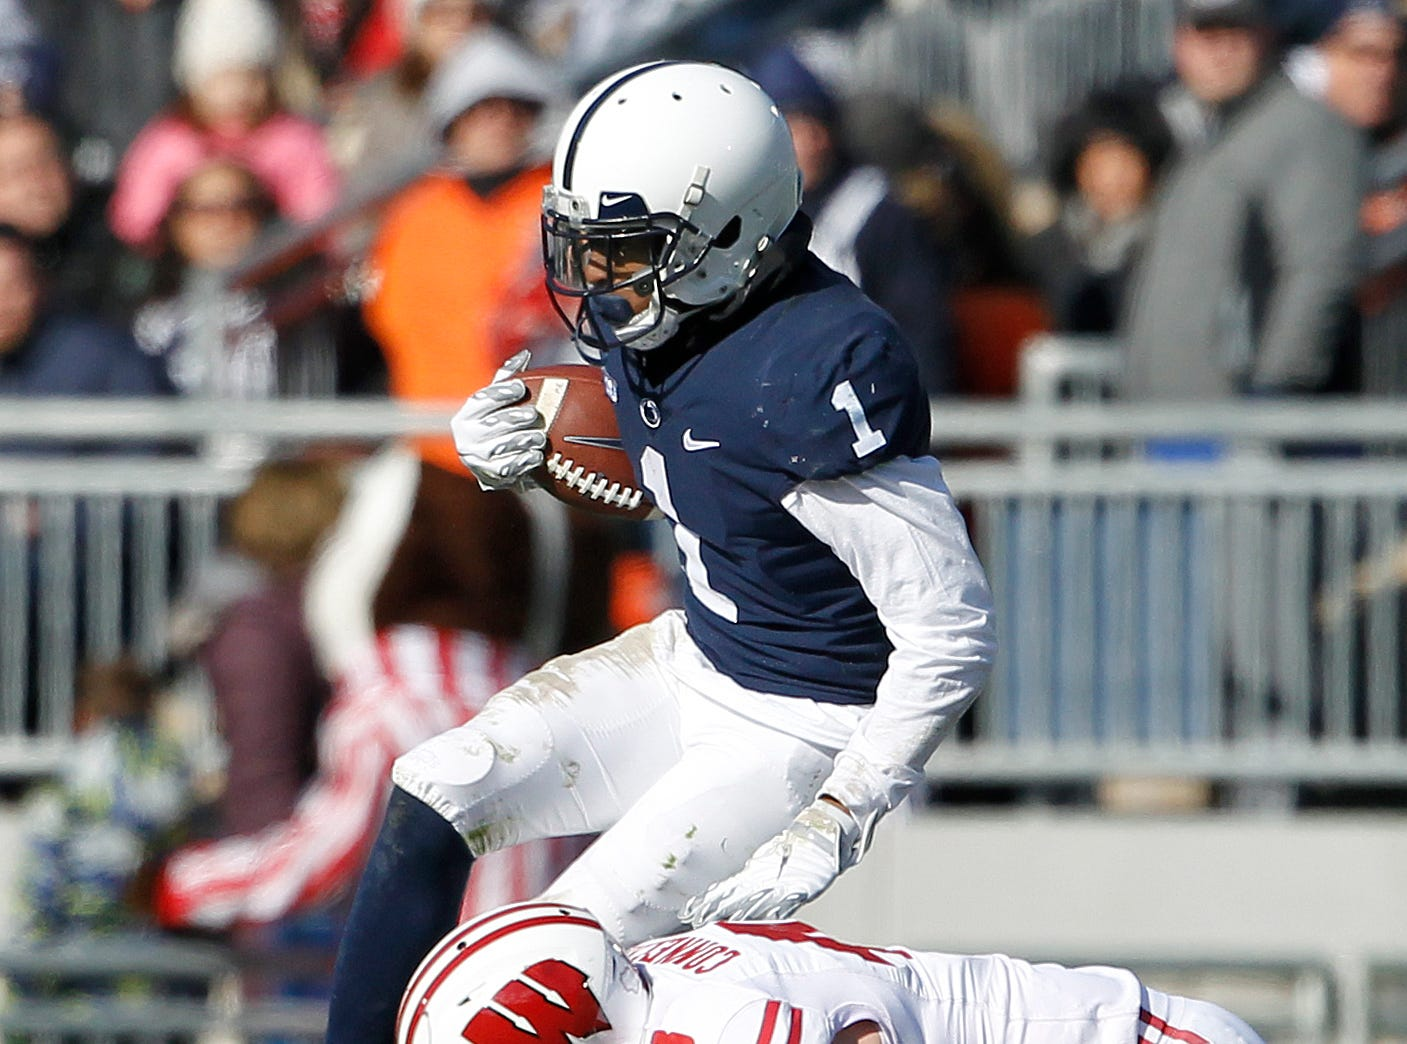 Penn State's KJ Hamler (1) gets hit by Wisconsin's Ryan Connelly (43) after a catch during the first half of an NCAA college football game in State College, Pa., Saturday, Nov. 10, 2018.